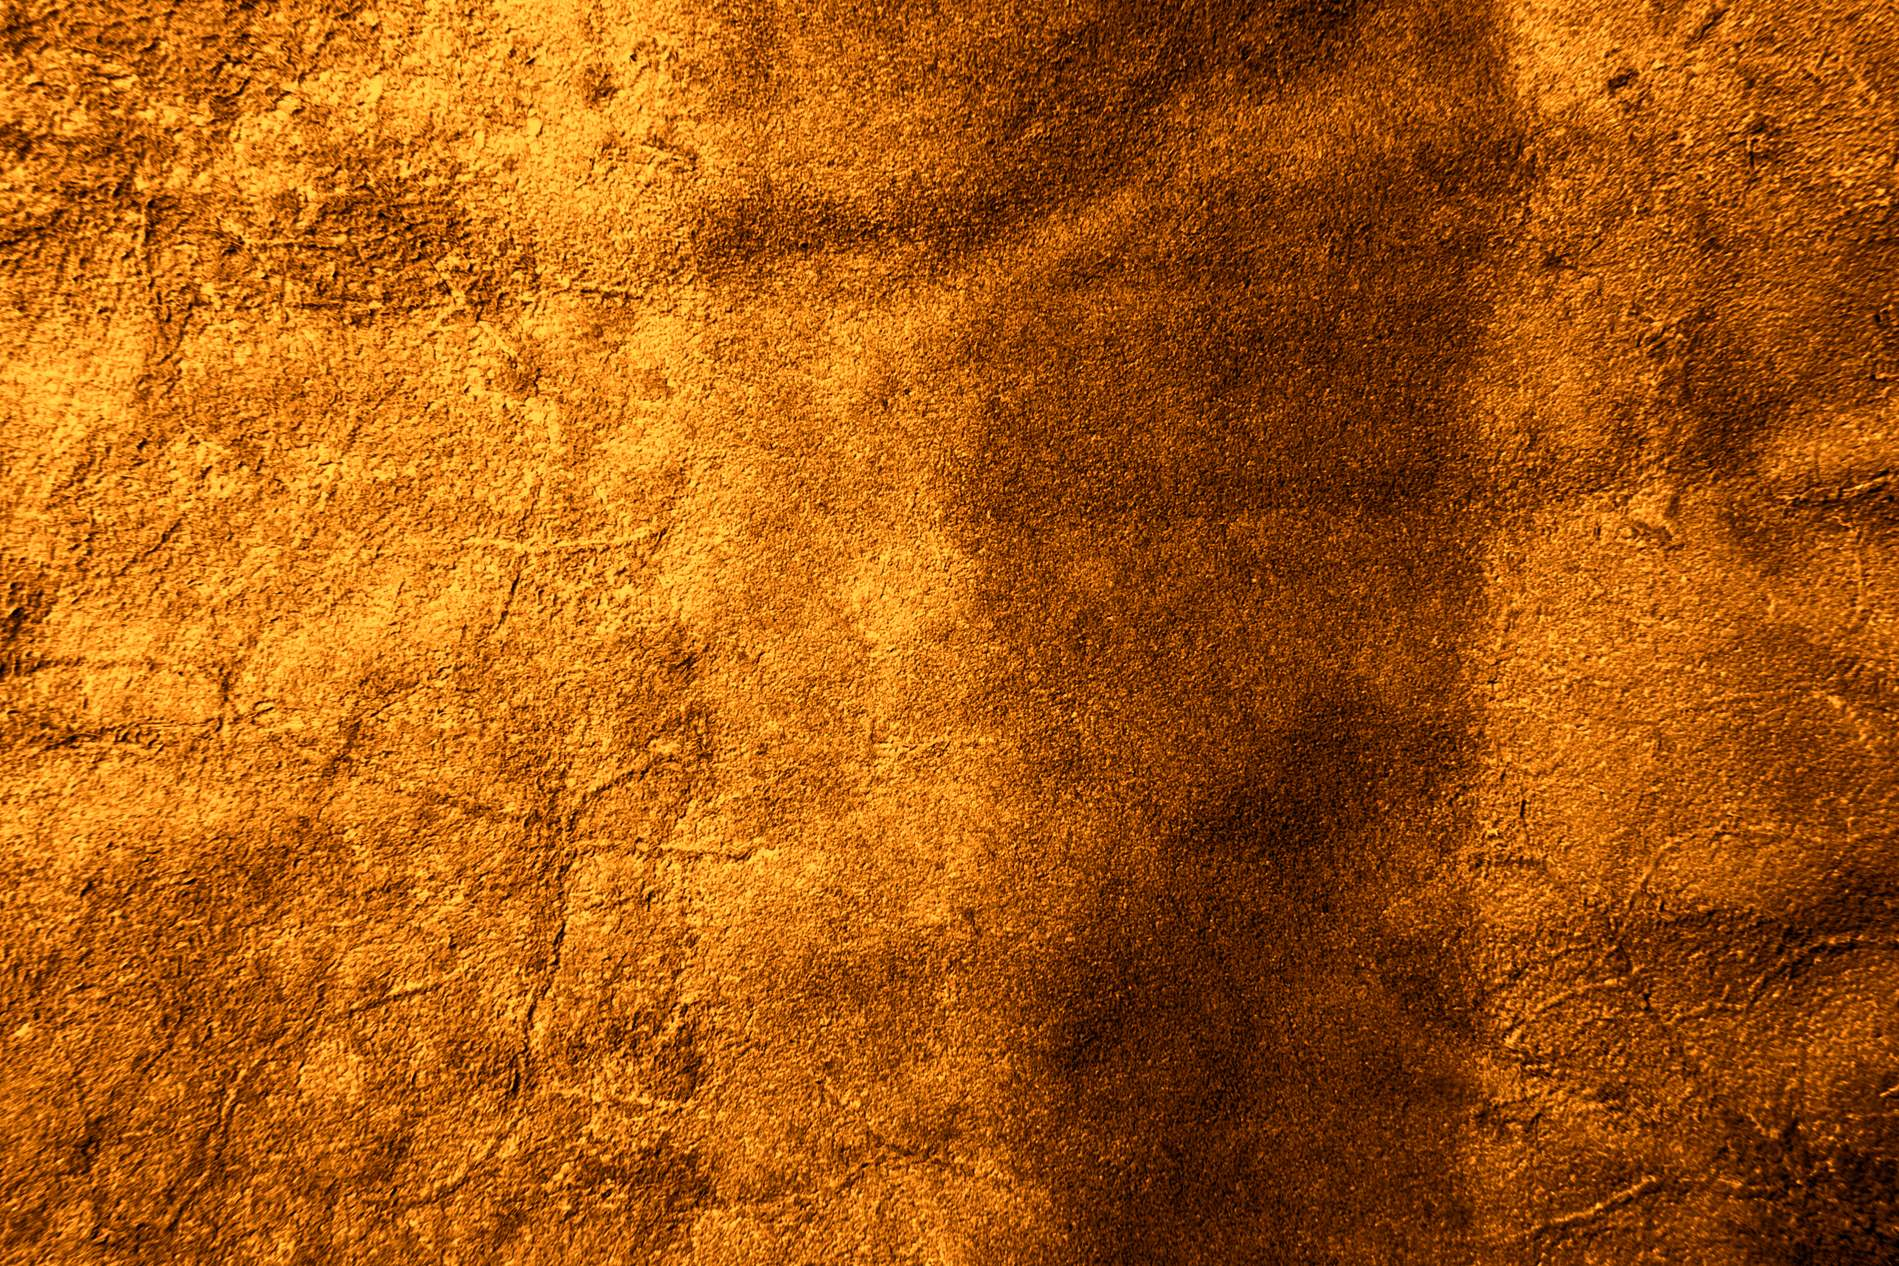 Yellow Gold Grunge Soft Leather Texture Background Photohdx